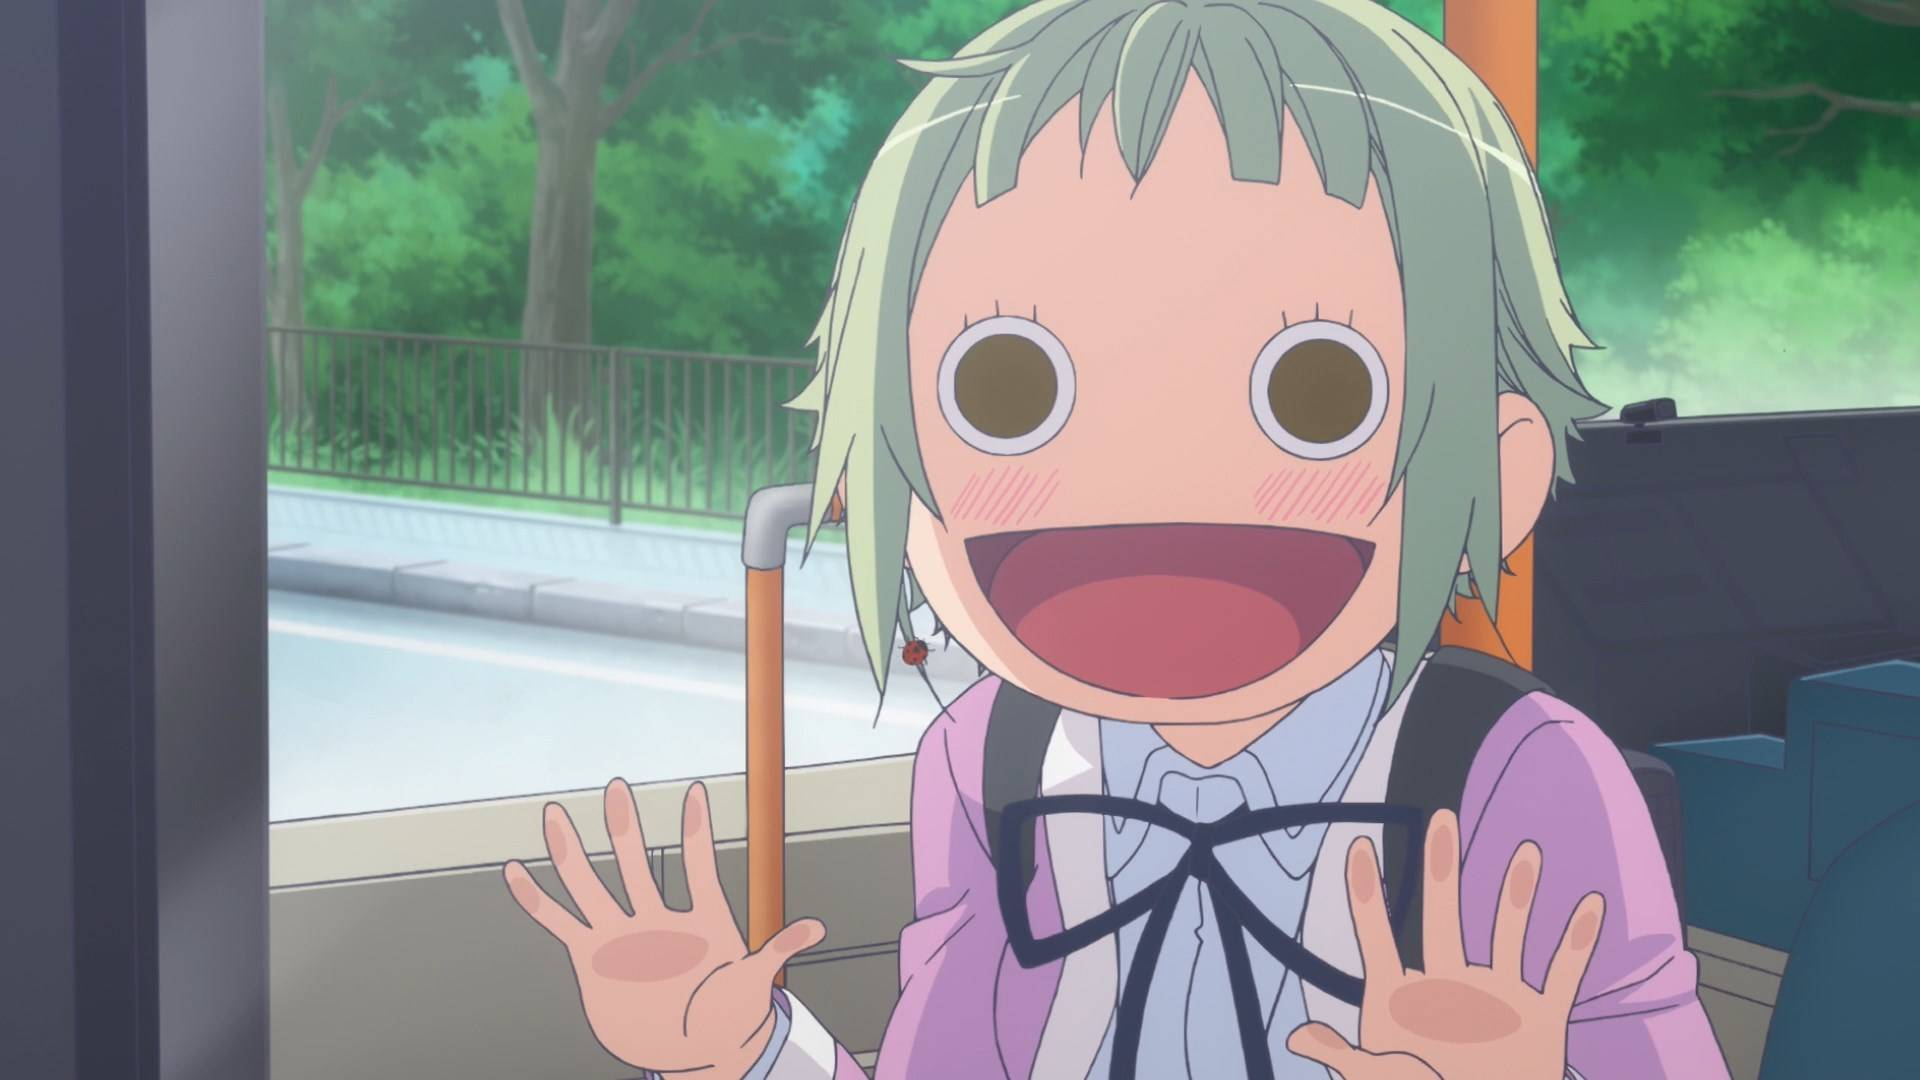 Another Amanchu Face Anime Manga Know Your Meme